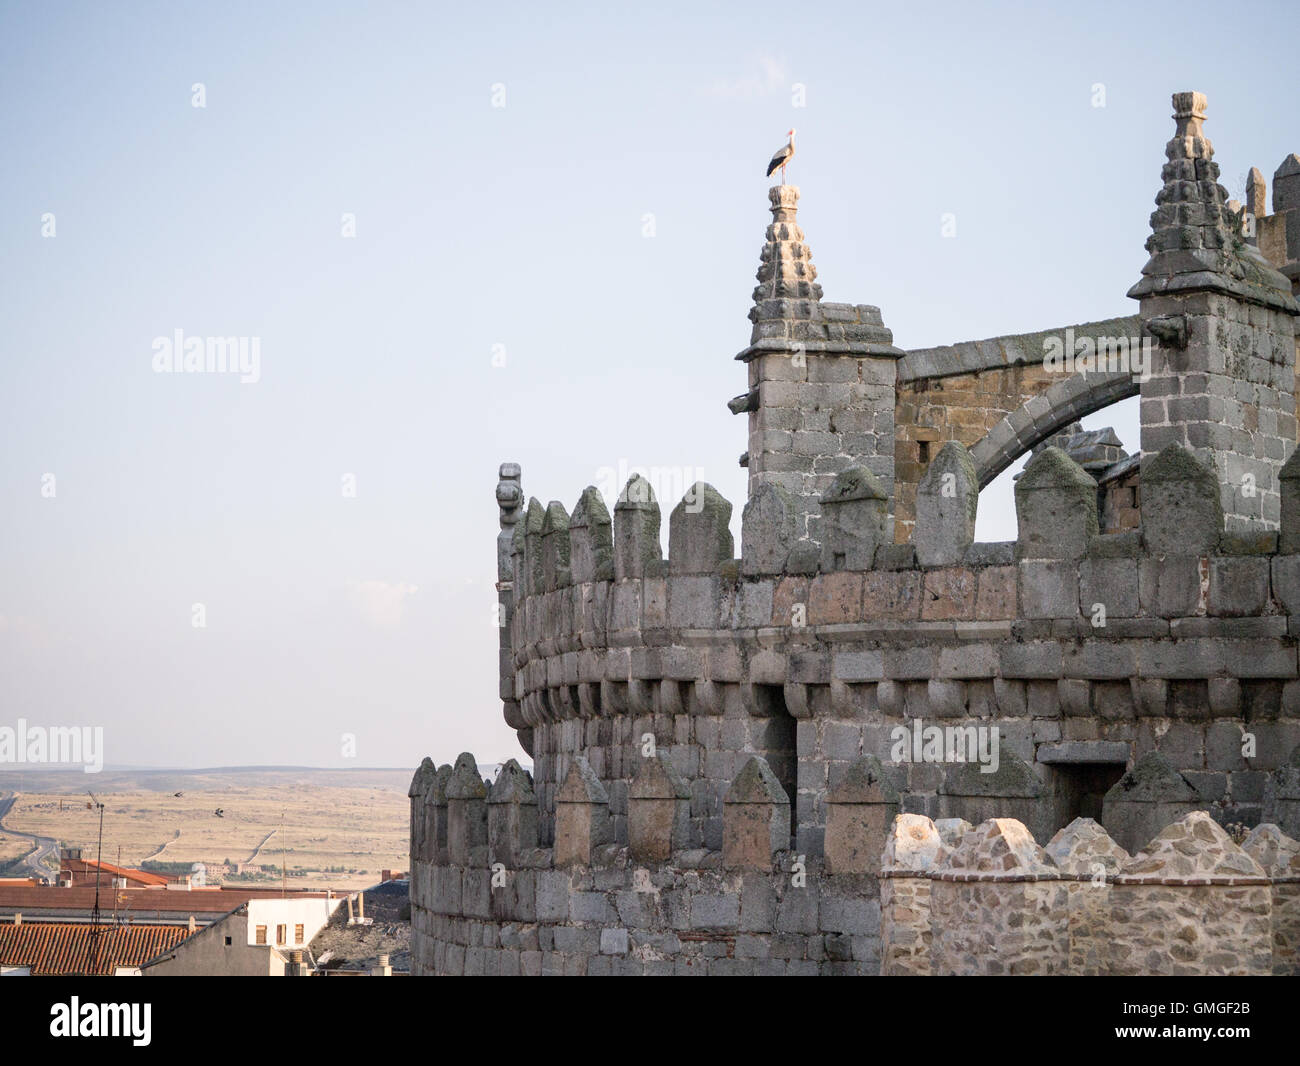 A white stork stands on the Cathedral of Ávila, Spain Stock Photo